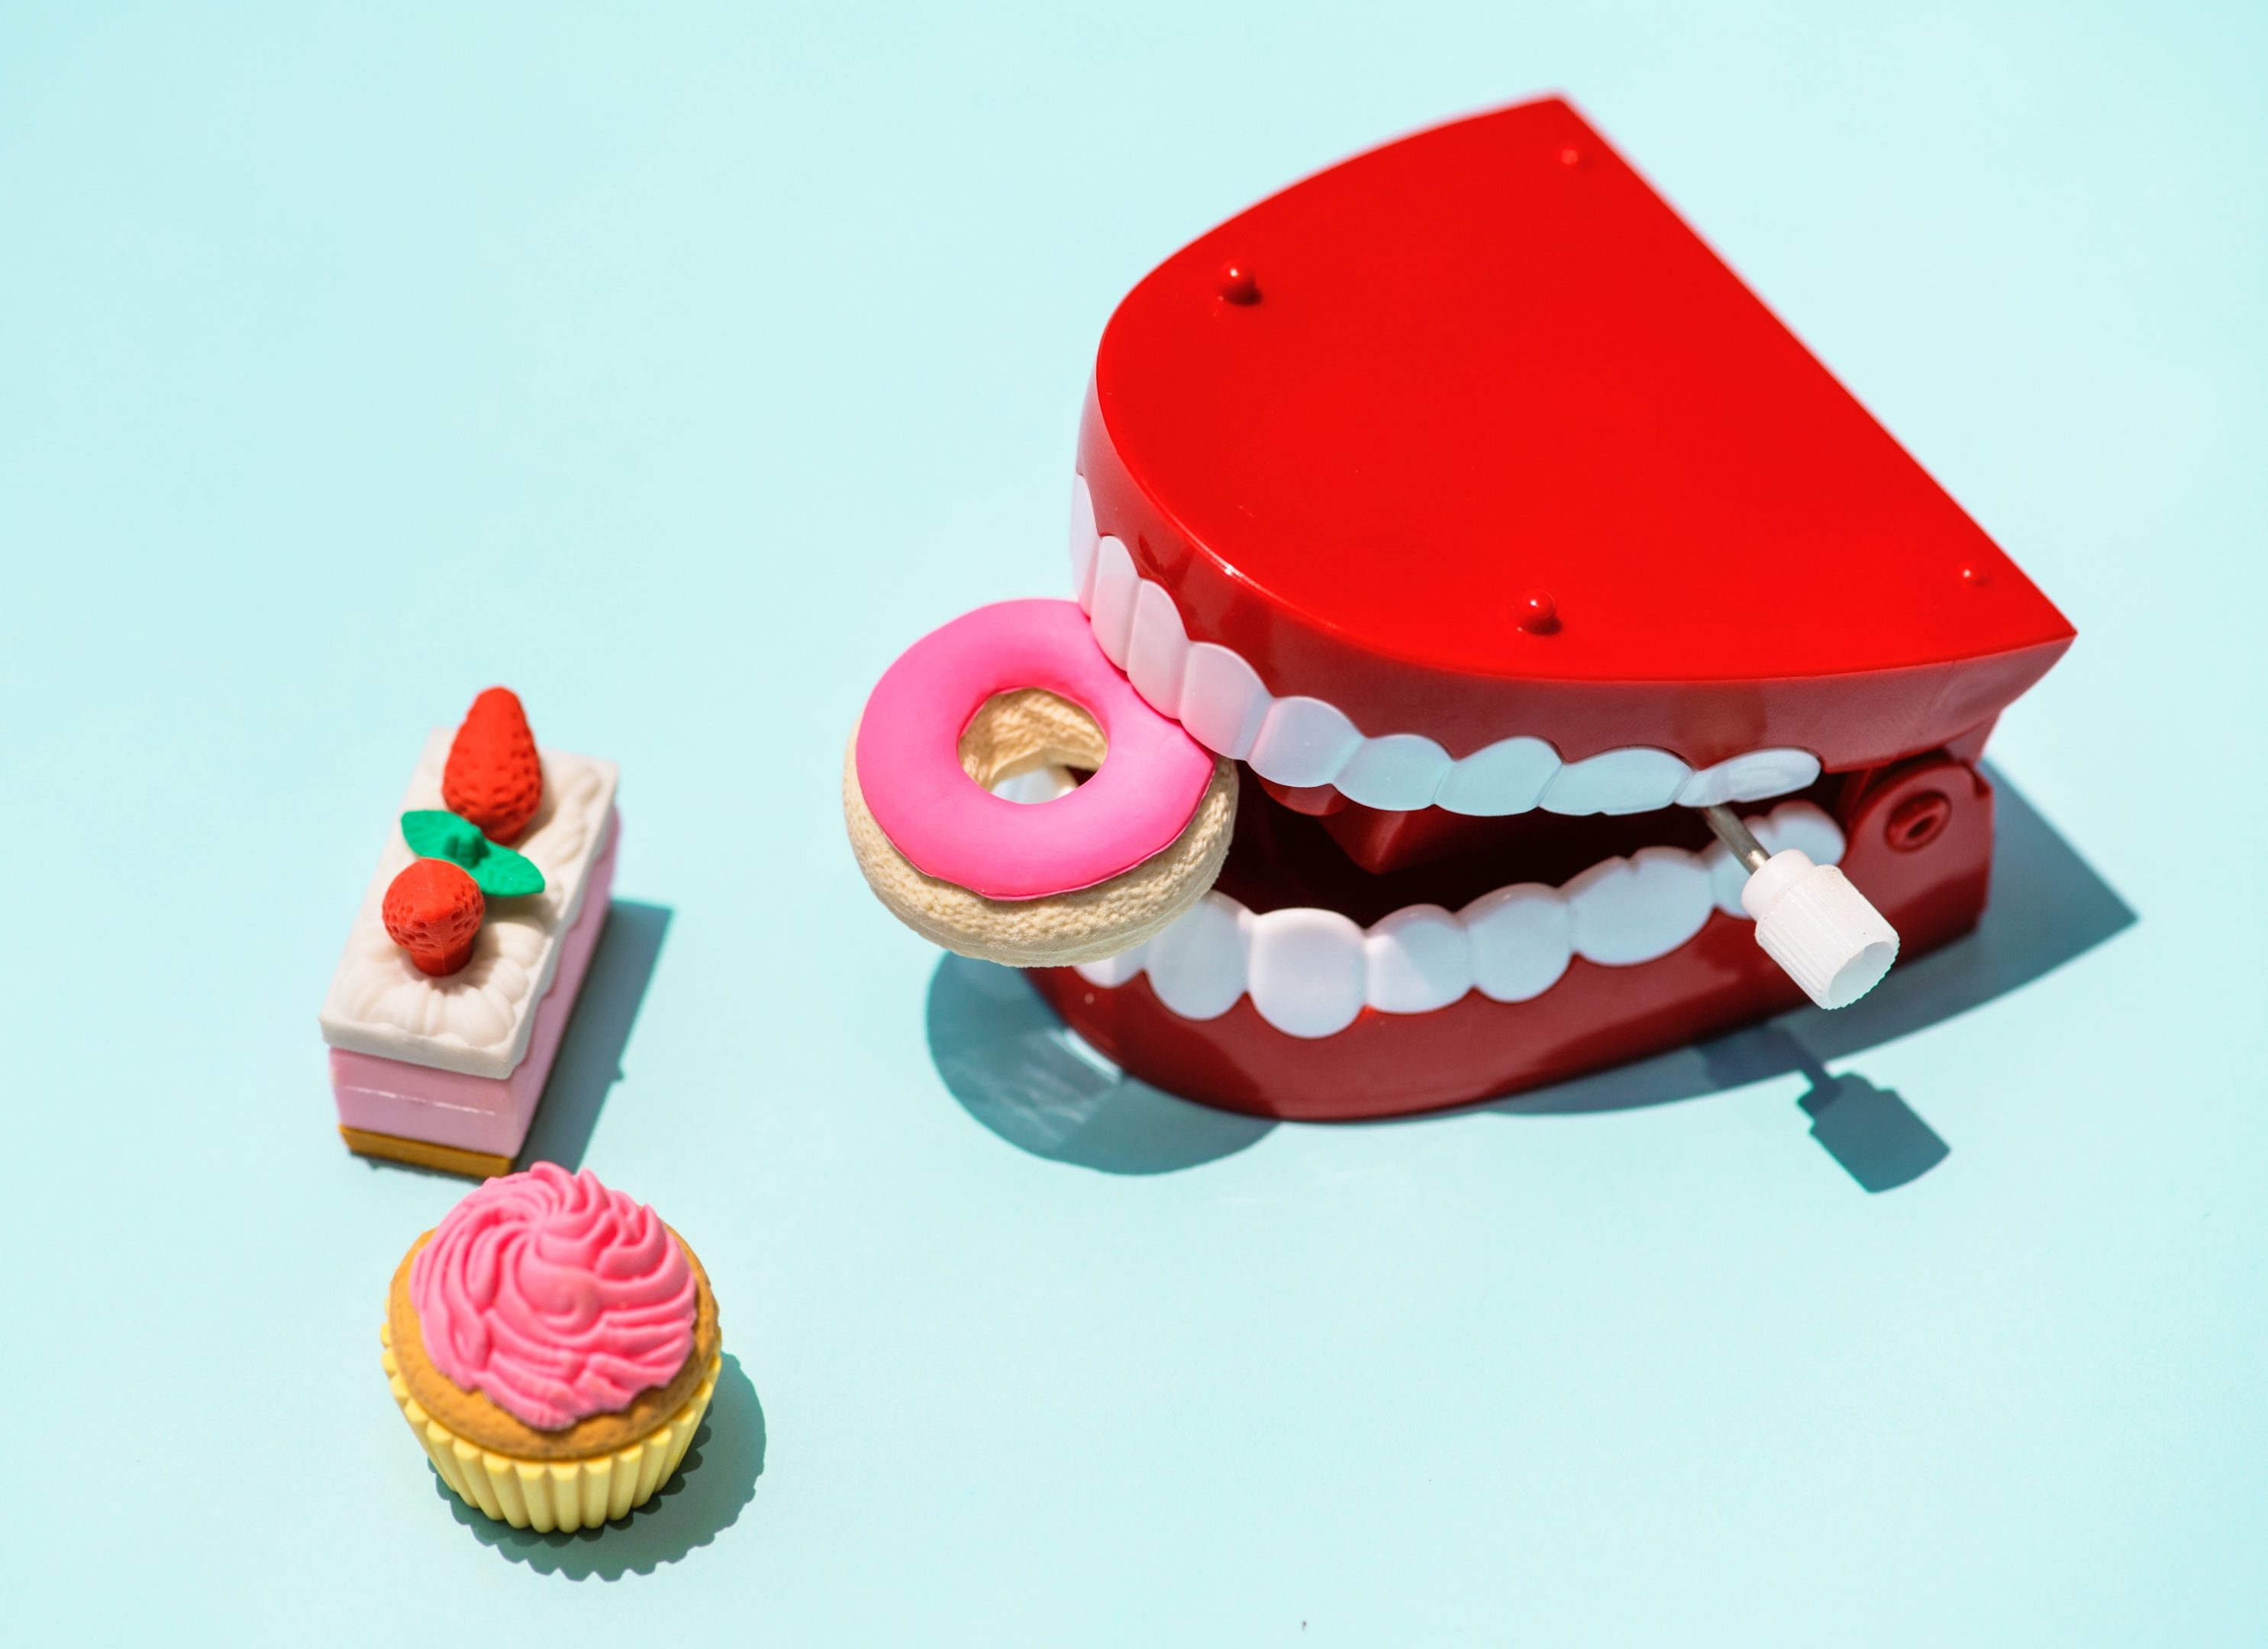 New to Dentures – Here's What You Need to Know